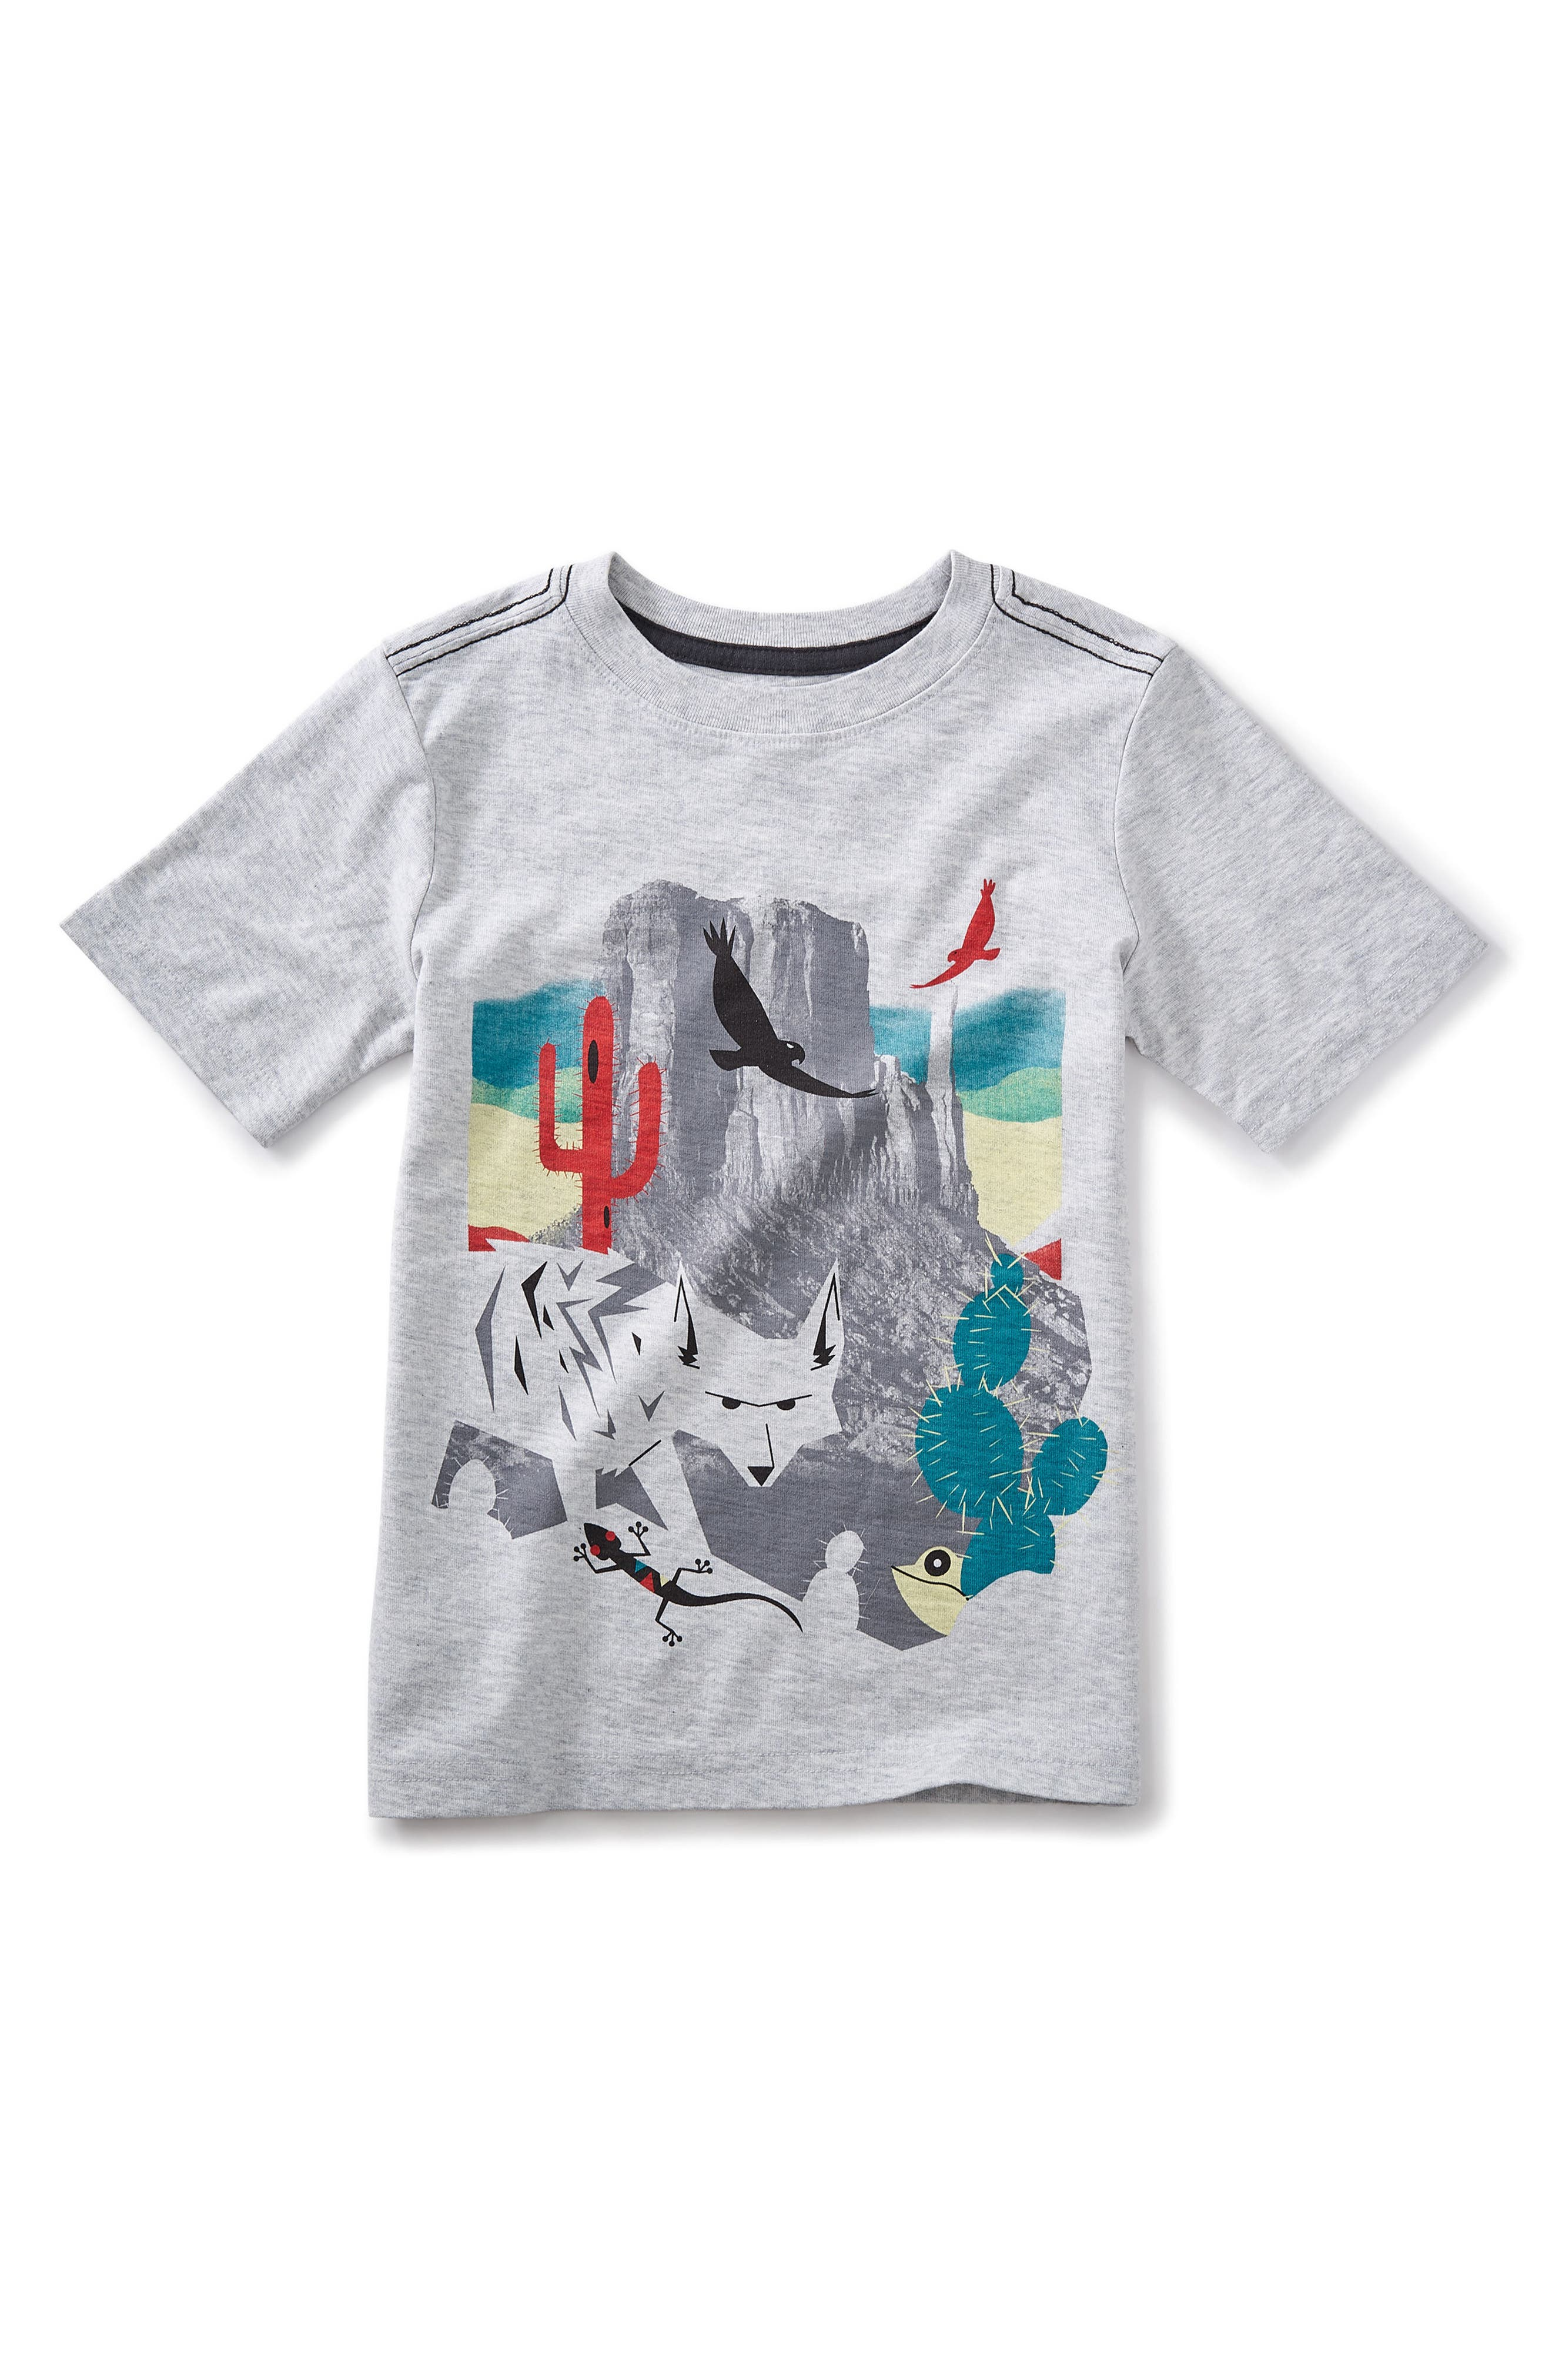 Canyon Lands Graphic T-Shirt,                         Main,                         color, Light Grey Heather